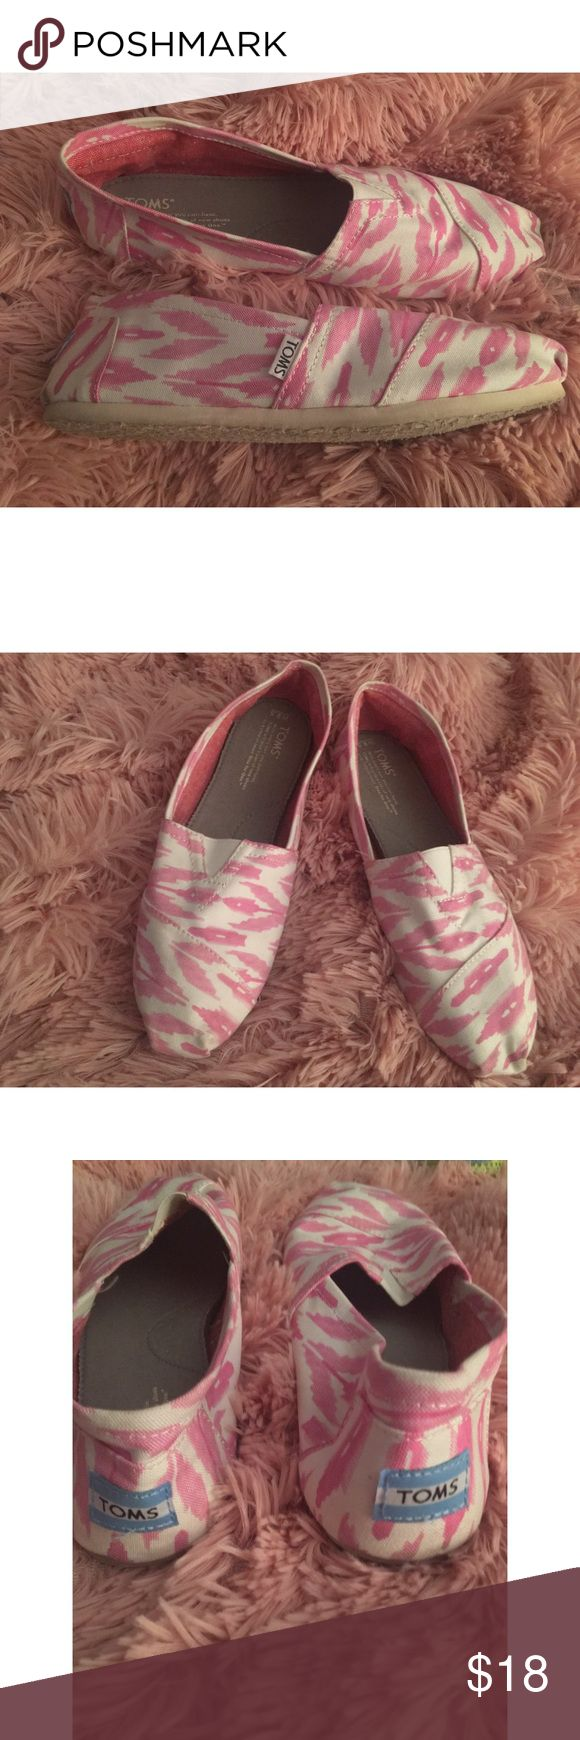 Chevron Pink and White Toms (gently used-size 9.5) Only worn twice, show wear on bottom of shoes but the inserts are perfectly intact. These are no longer available on the Toms website. Comes from a smoke FREE home 🚭 Offers are welcome! Toms Shoes Flats & Loafers